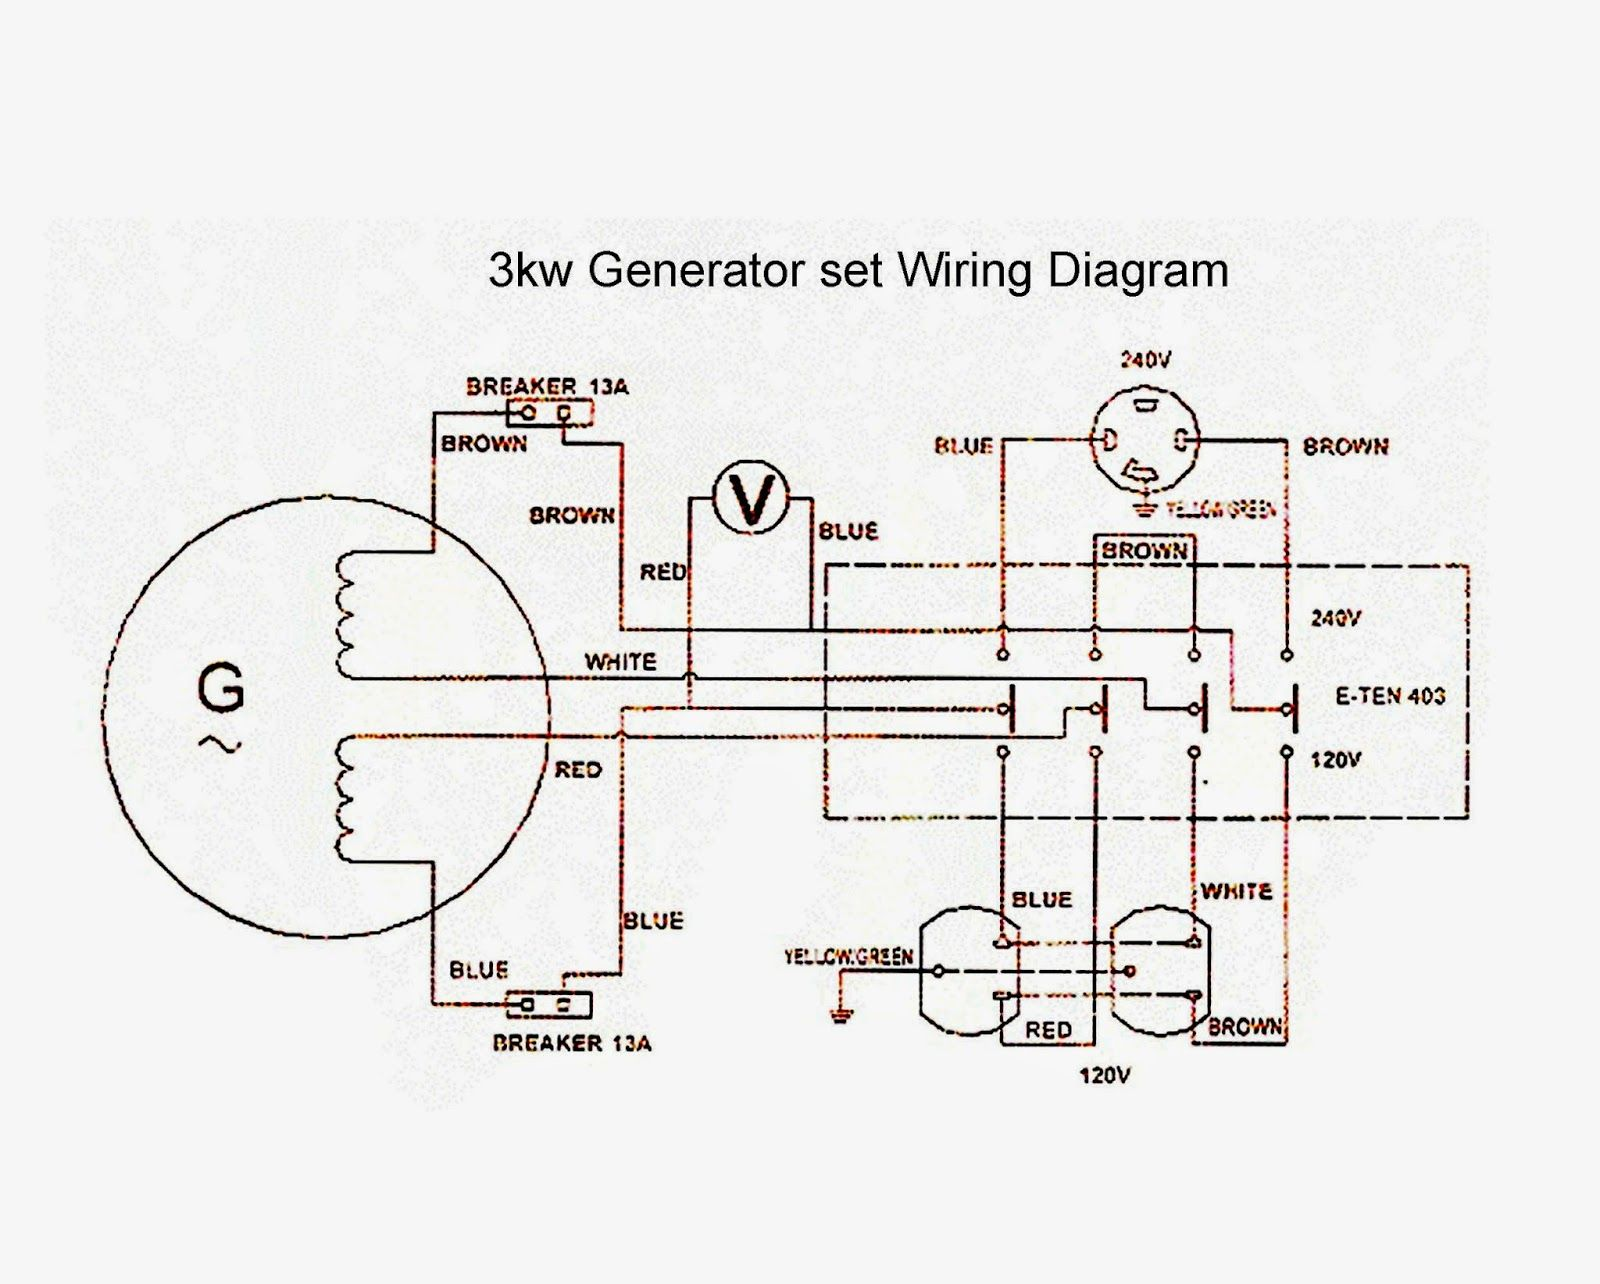 20 Stunning Wiring Diagram Tool Design Https Bacamajalah Com 20 Stunning Wiring Diagram Tool Design Circuit Diagram Diagram Electrical Circuit Diagram